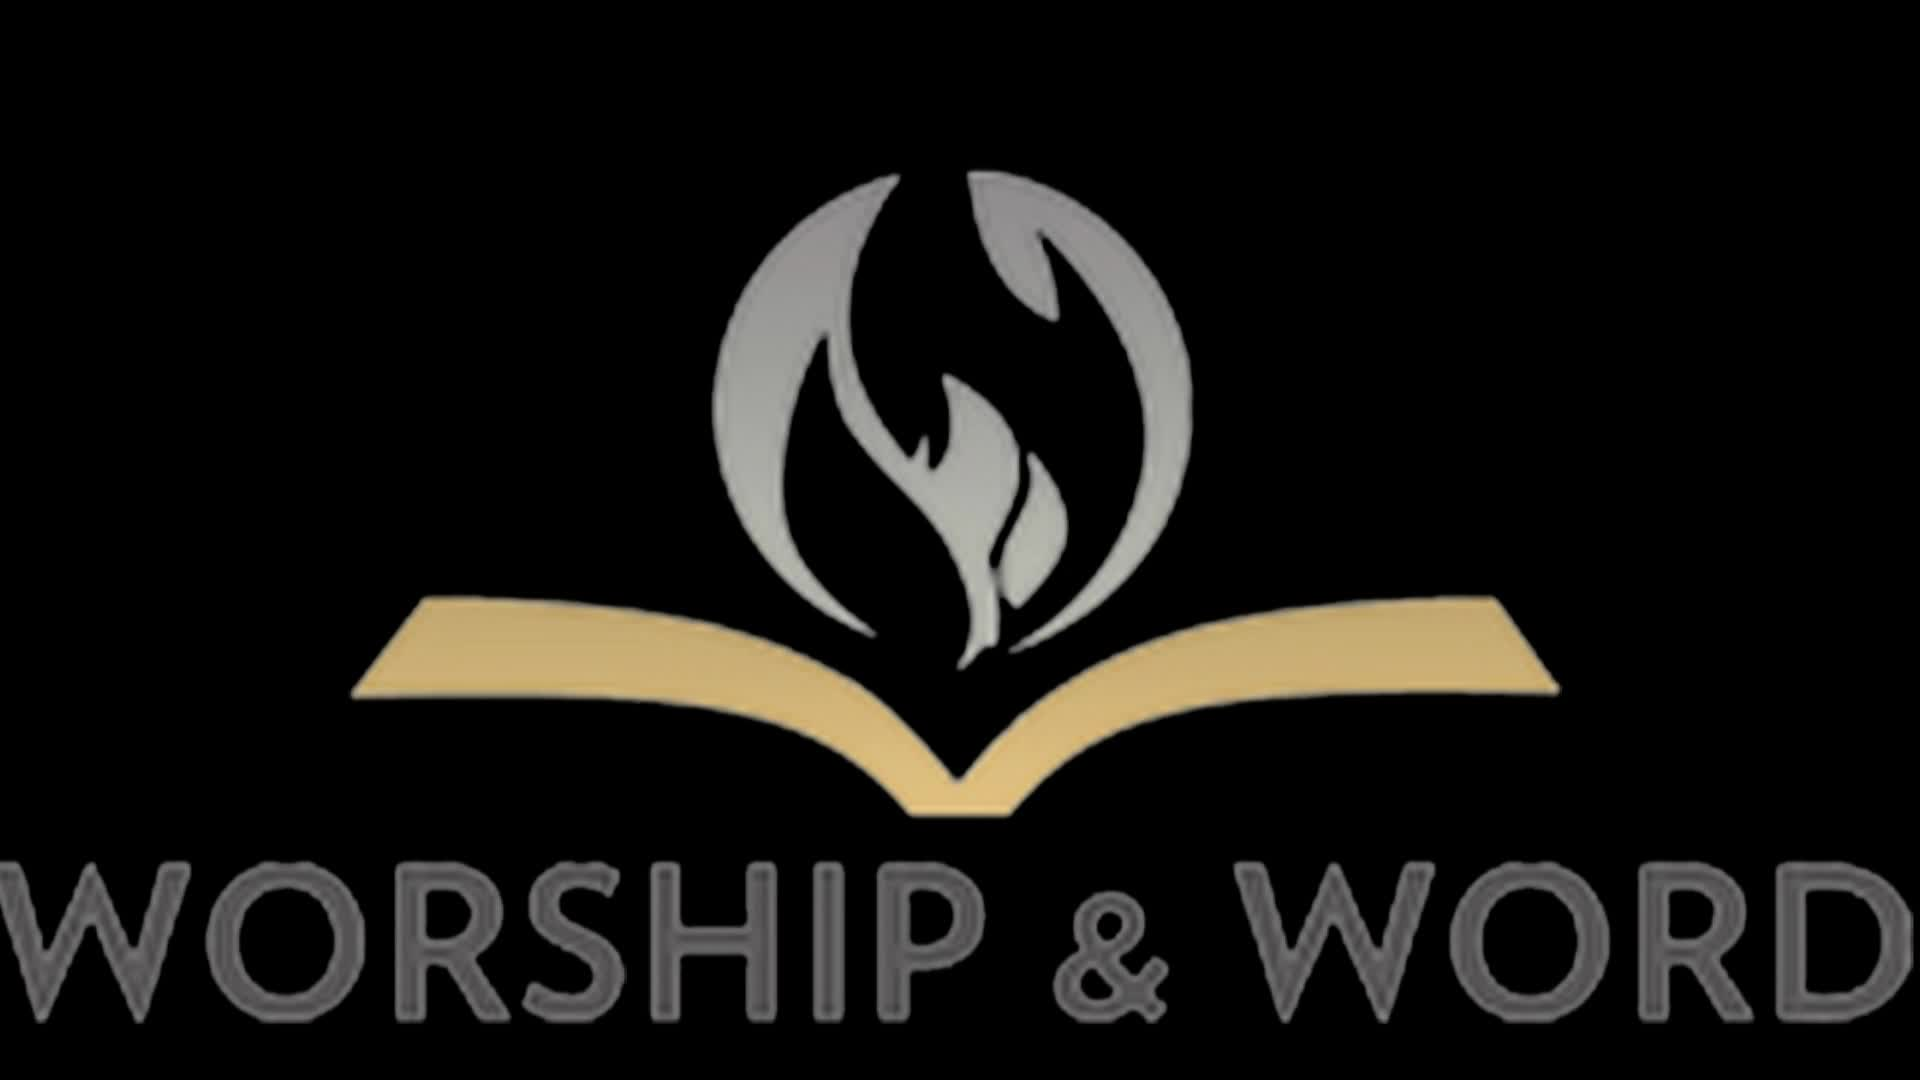 Sunday Worship Service Worship and Word